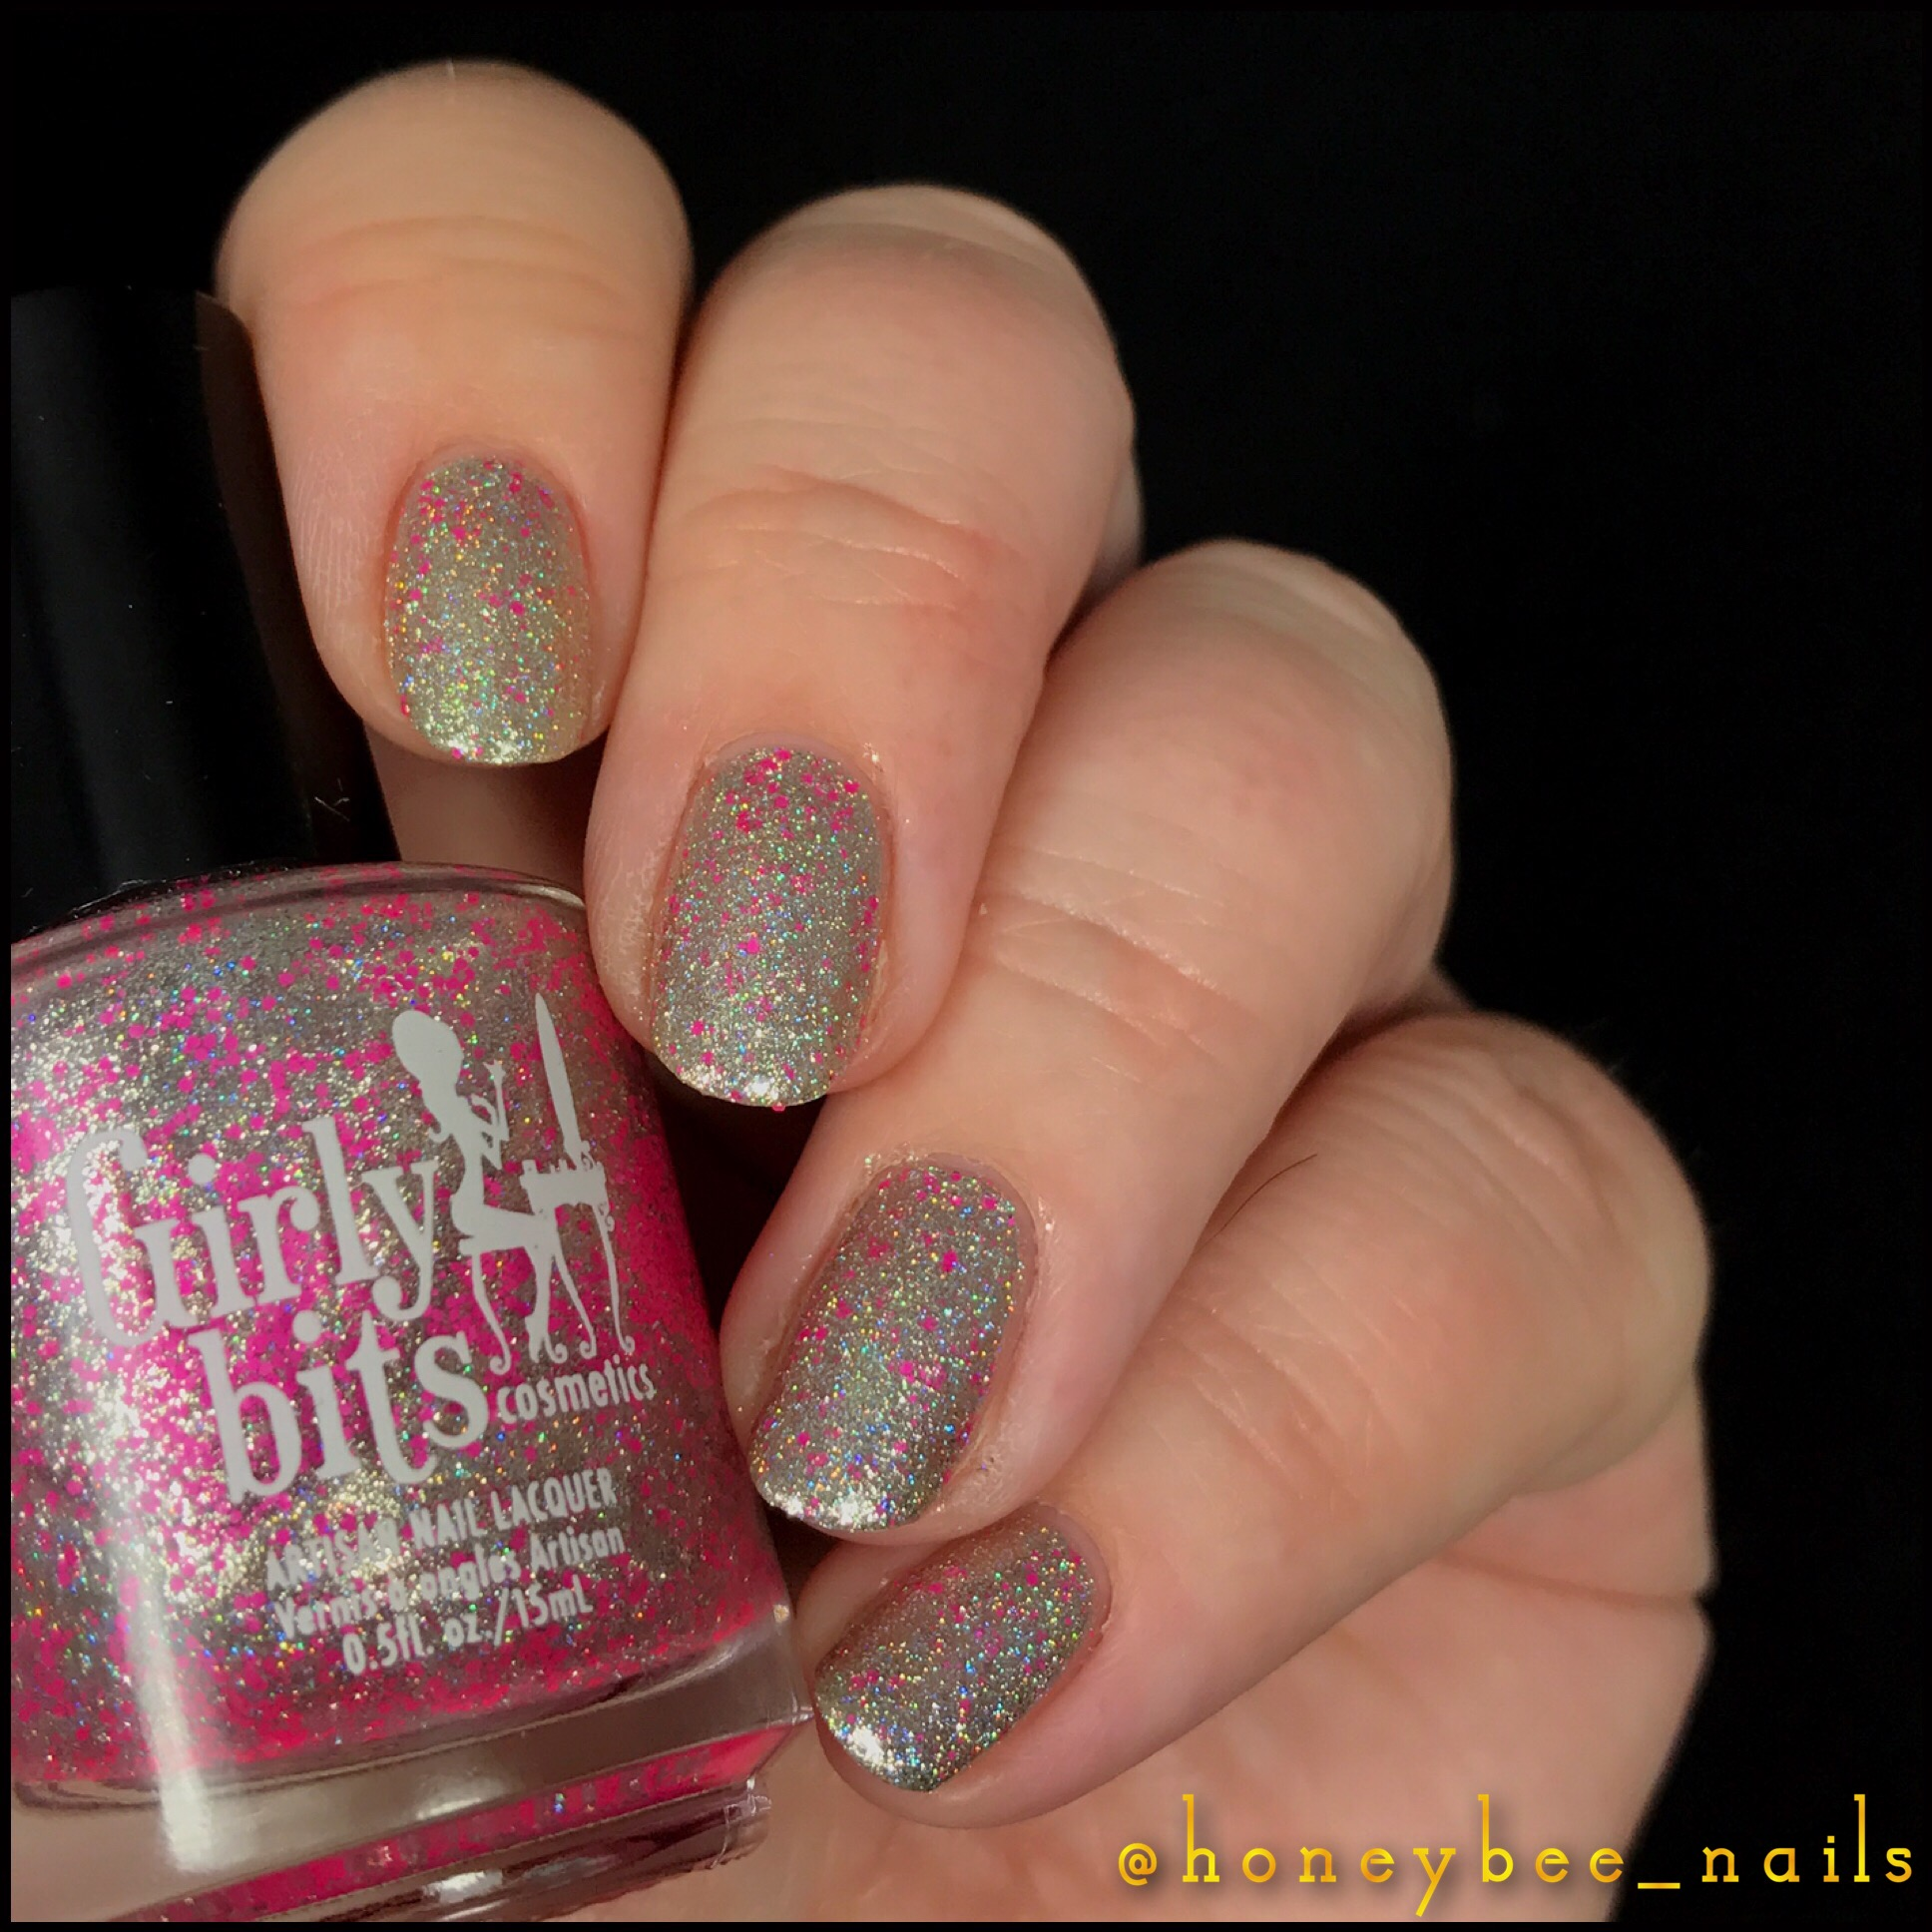 sequins-and-satin-pants-gwp-girly-bits-cosmetics-honey-bee-nails-2-.jpg